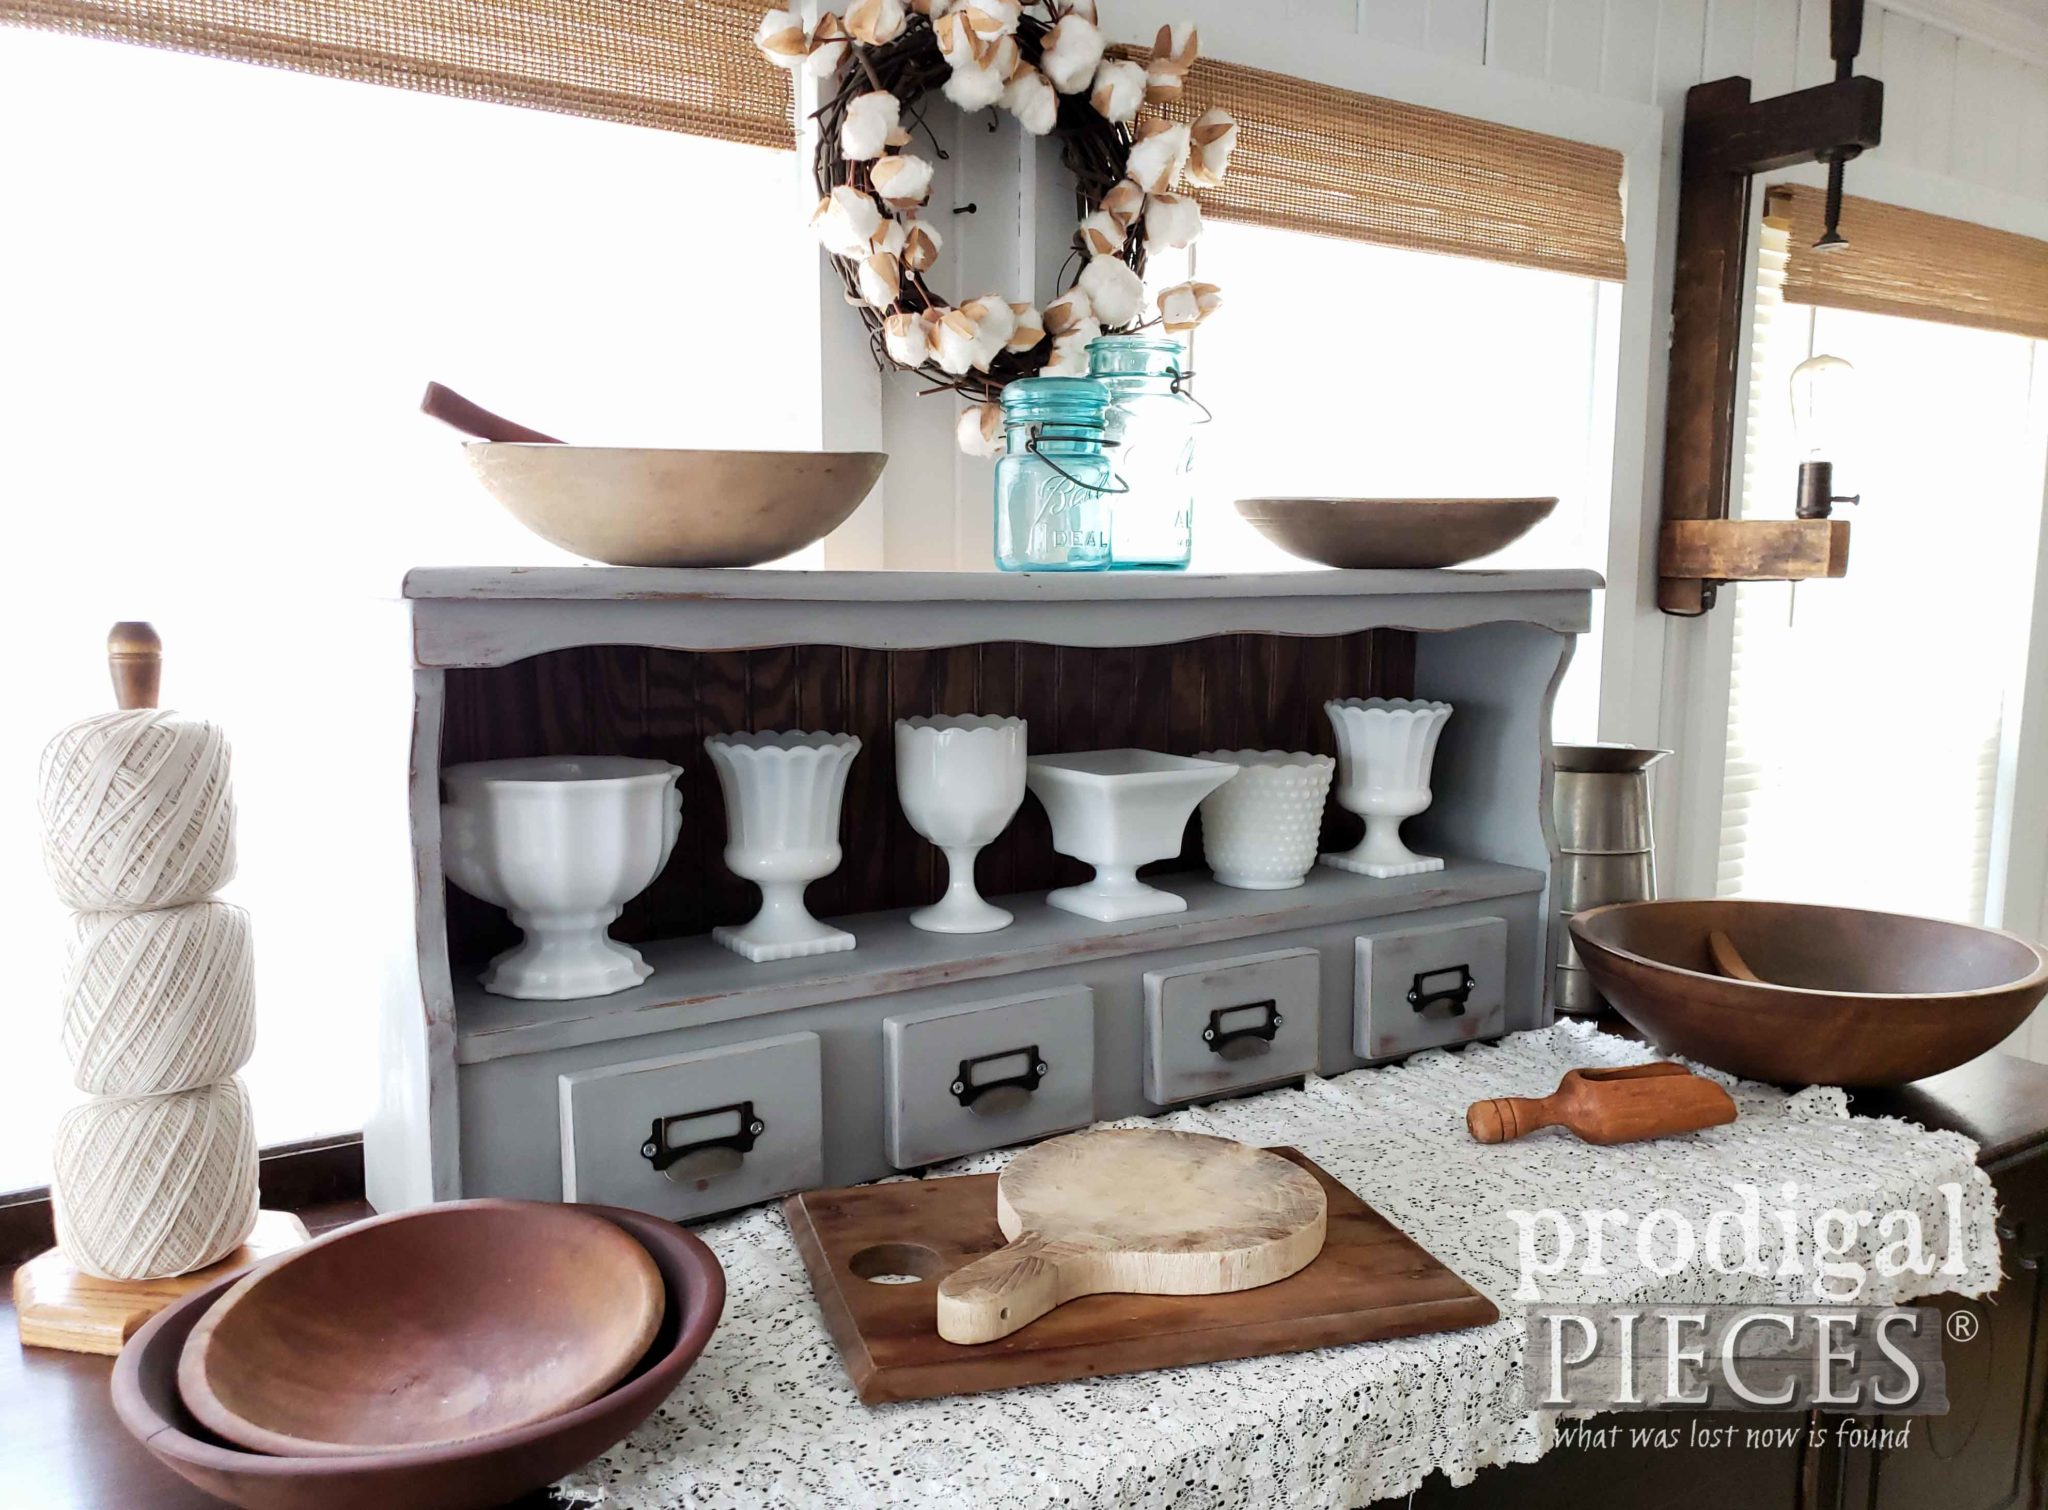 Upcycled Farmhouse Hutch Created from a Vintage Bookcase Headboard by Larissa of Prodigal Pieces | prodigalpieces.com #prodigalpieces #diy #farmhouse #home #vintage #homedecor